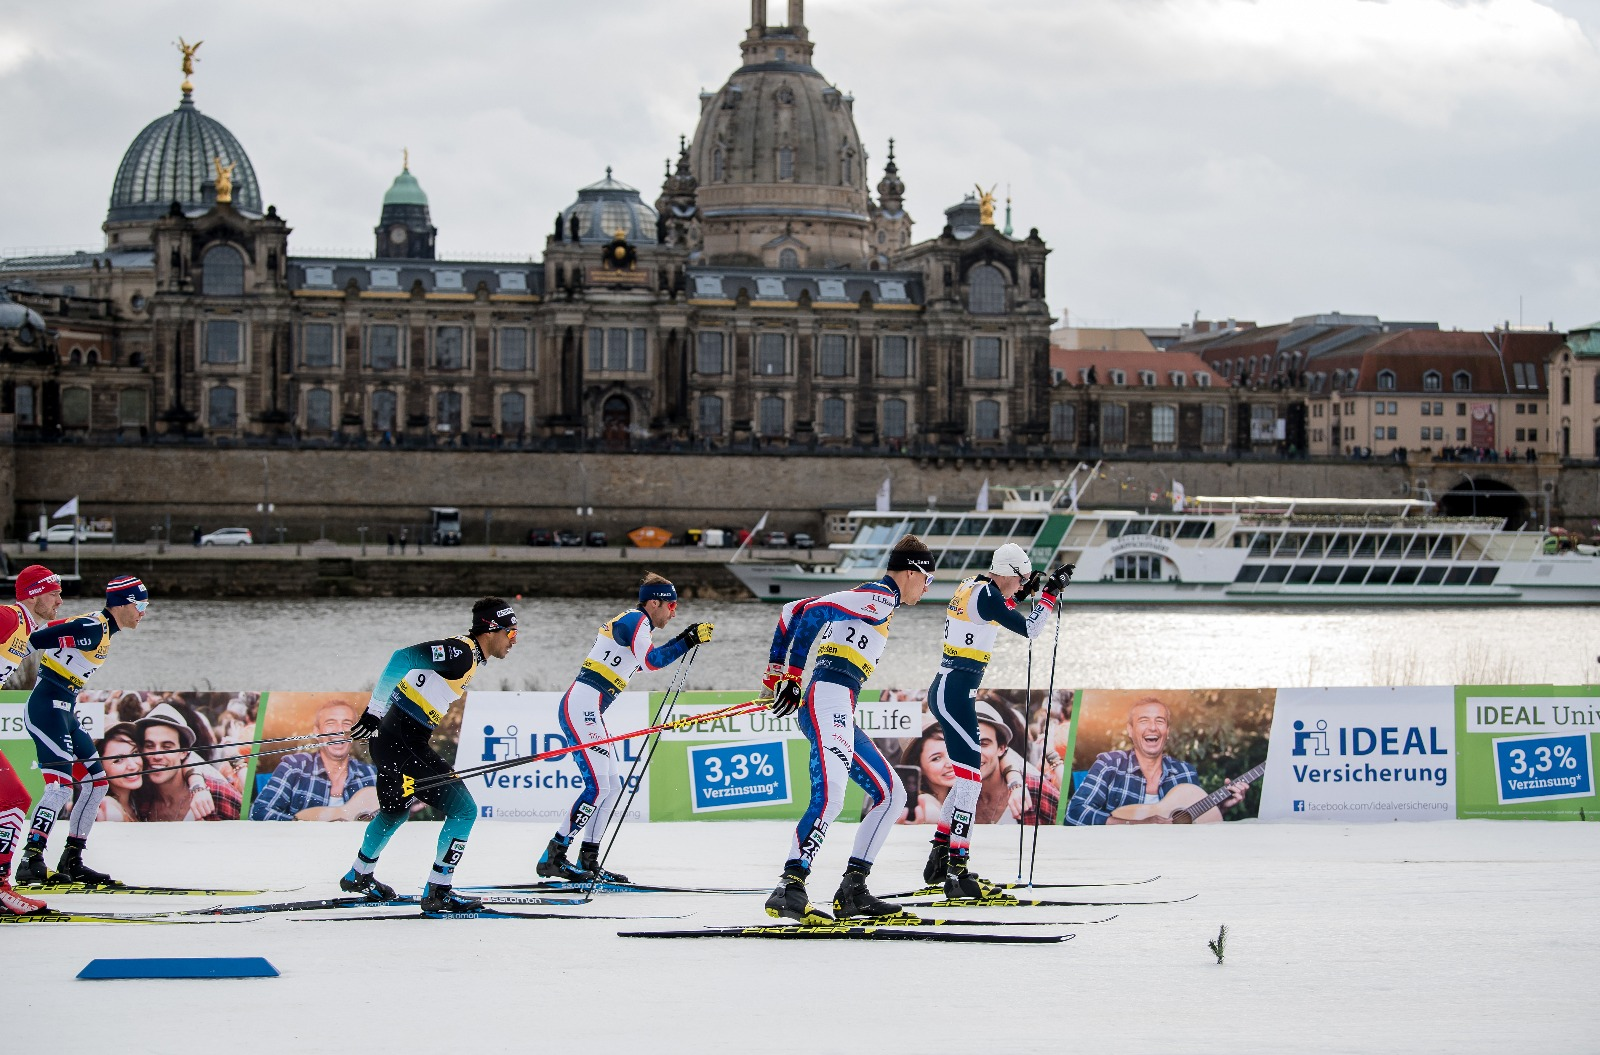 Andy Newell (19) and Kevin Bolger (28) compete in the 2019 Dresden City Sprint World Cup